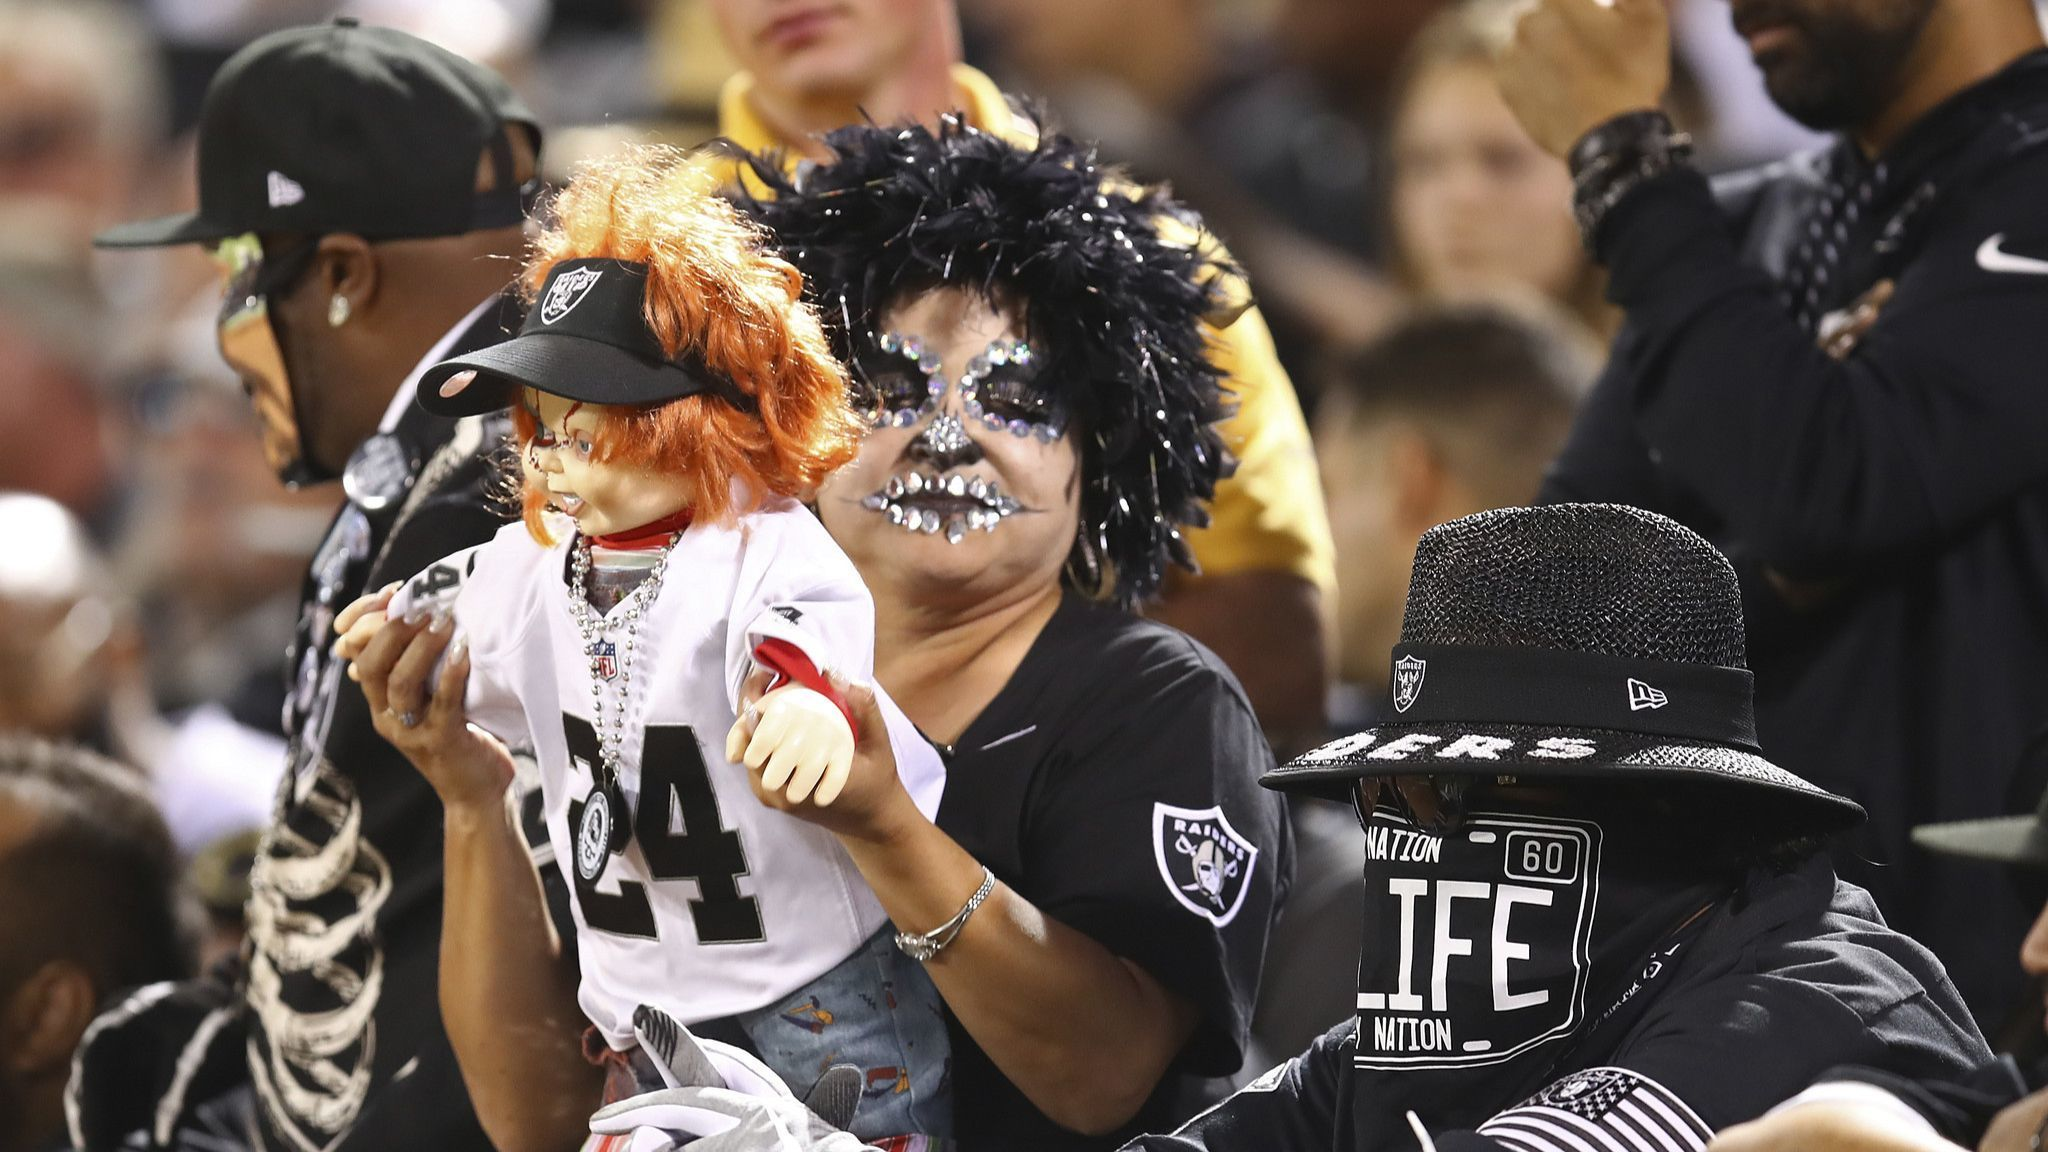 Ask Farmer: How did Jon Gruden get the nickname 'Chucky'?